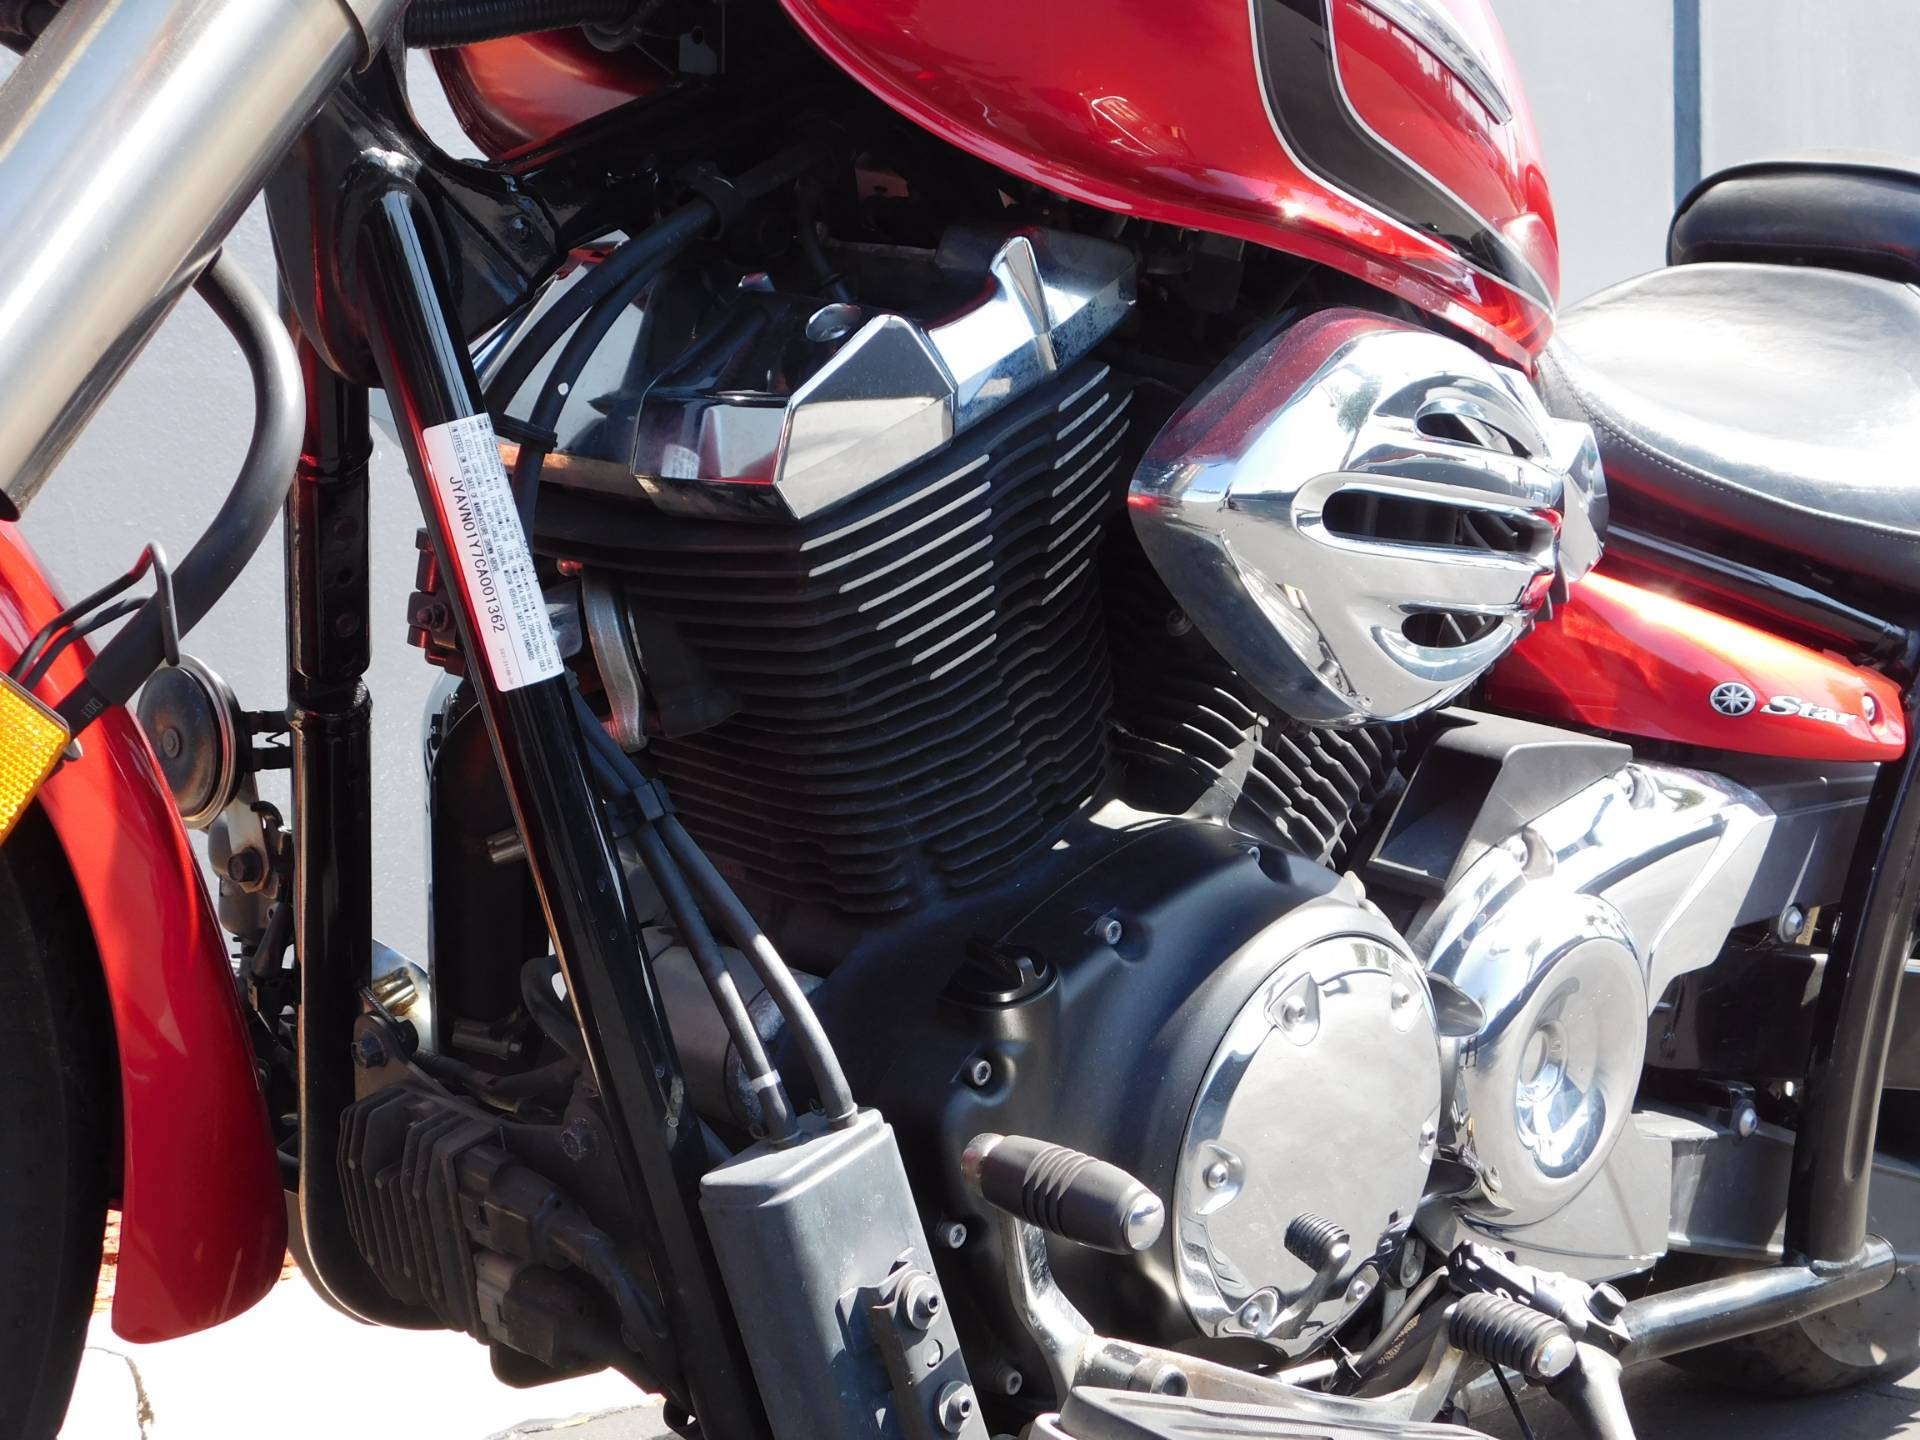 2012 Yamaha V Star 950 in Chula Vista, California - Photo 19